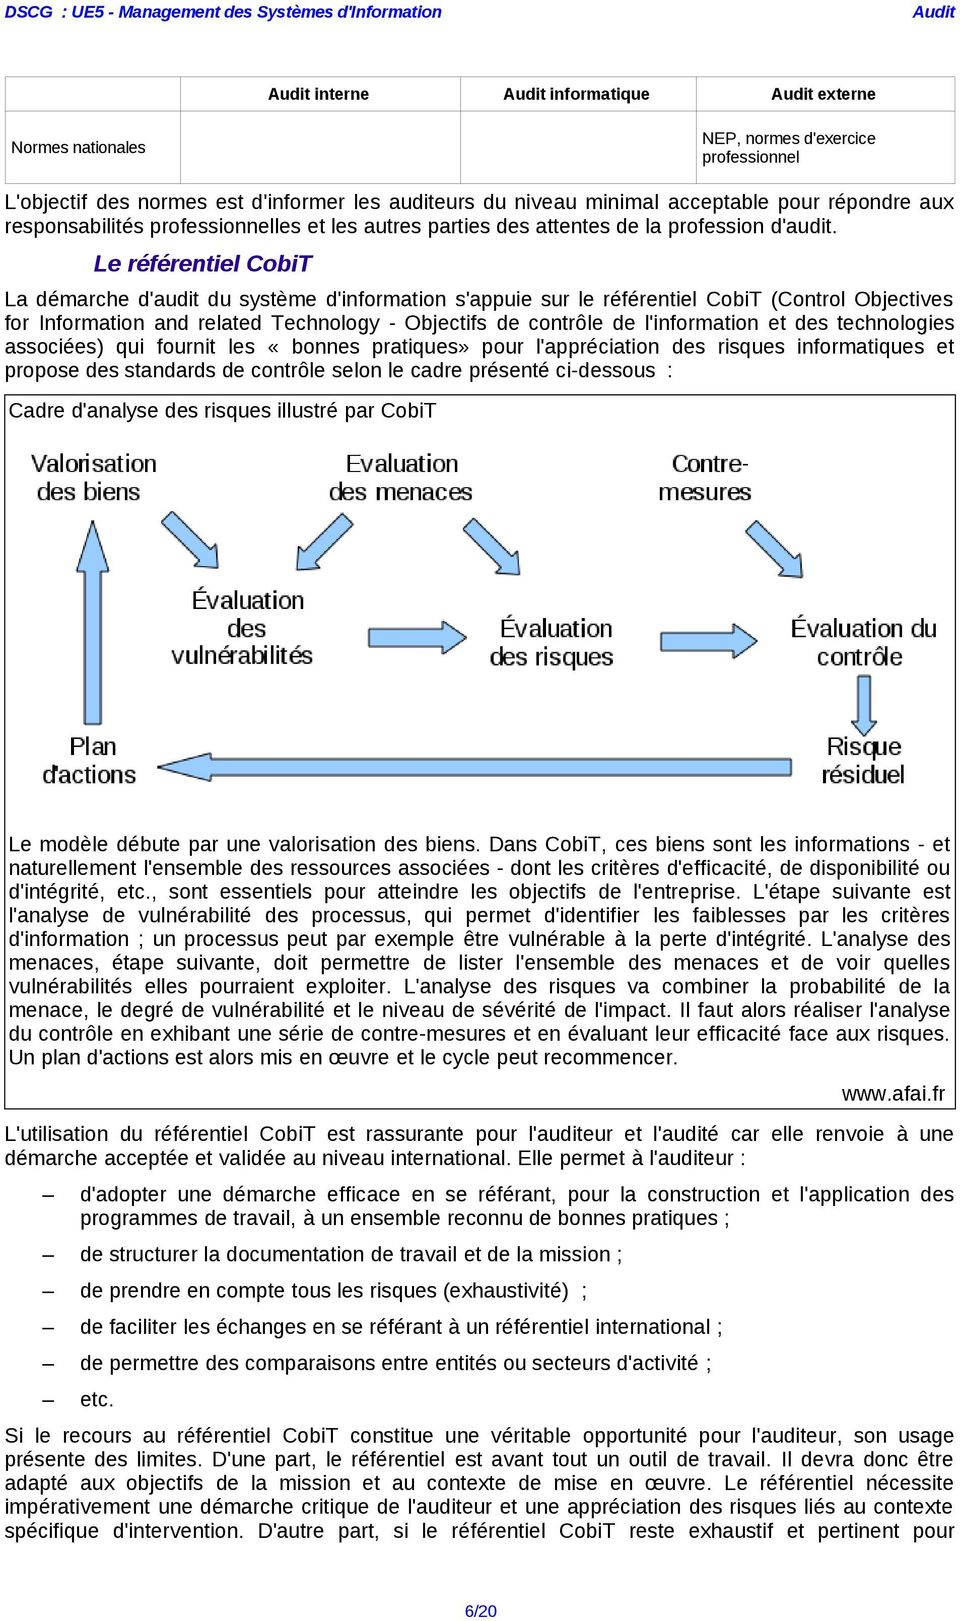 Le référentiel CobiT La démarche d'audit du système d'information s'appuie sur le référentiel CobiT (Control Objectives for Information and related Technology - Objectifs de contrôle de l'information